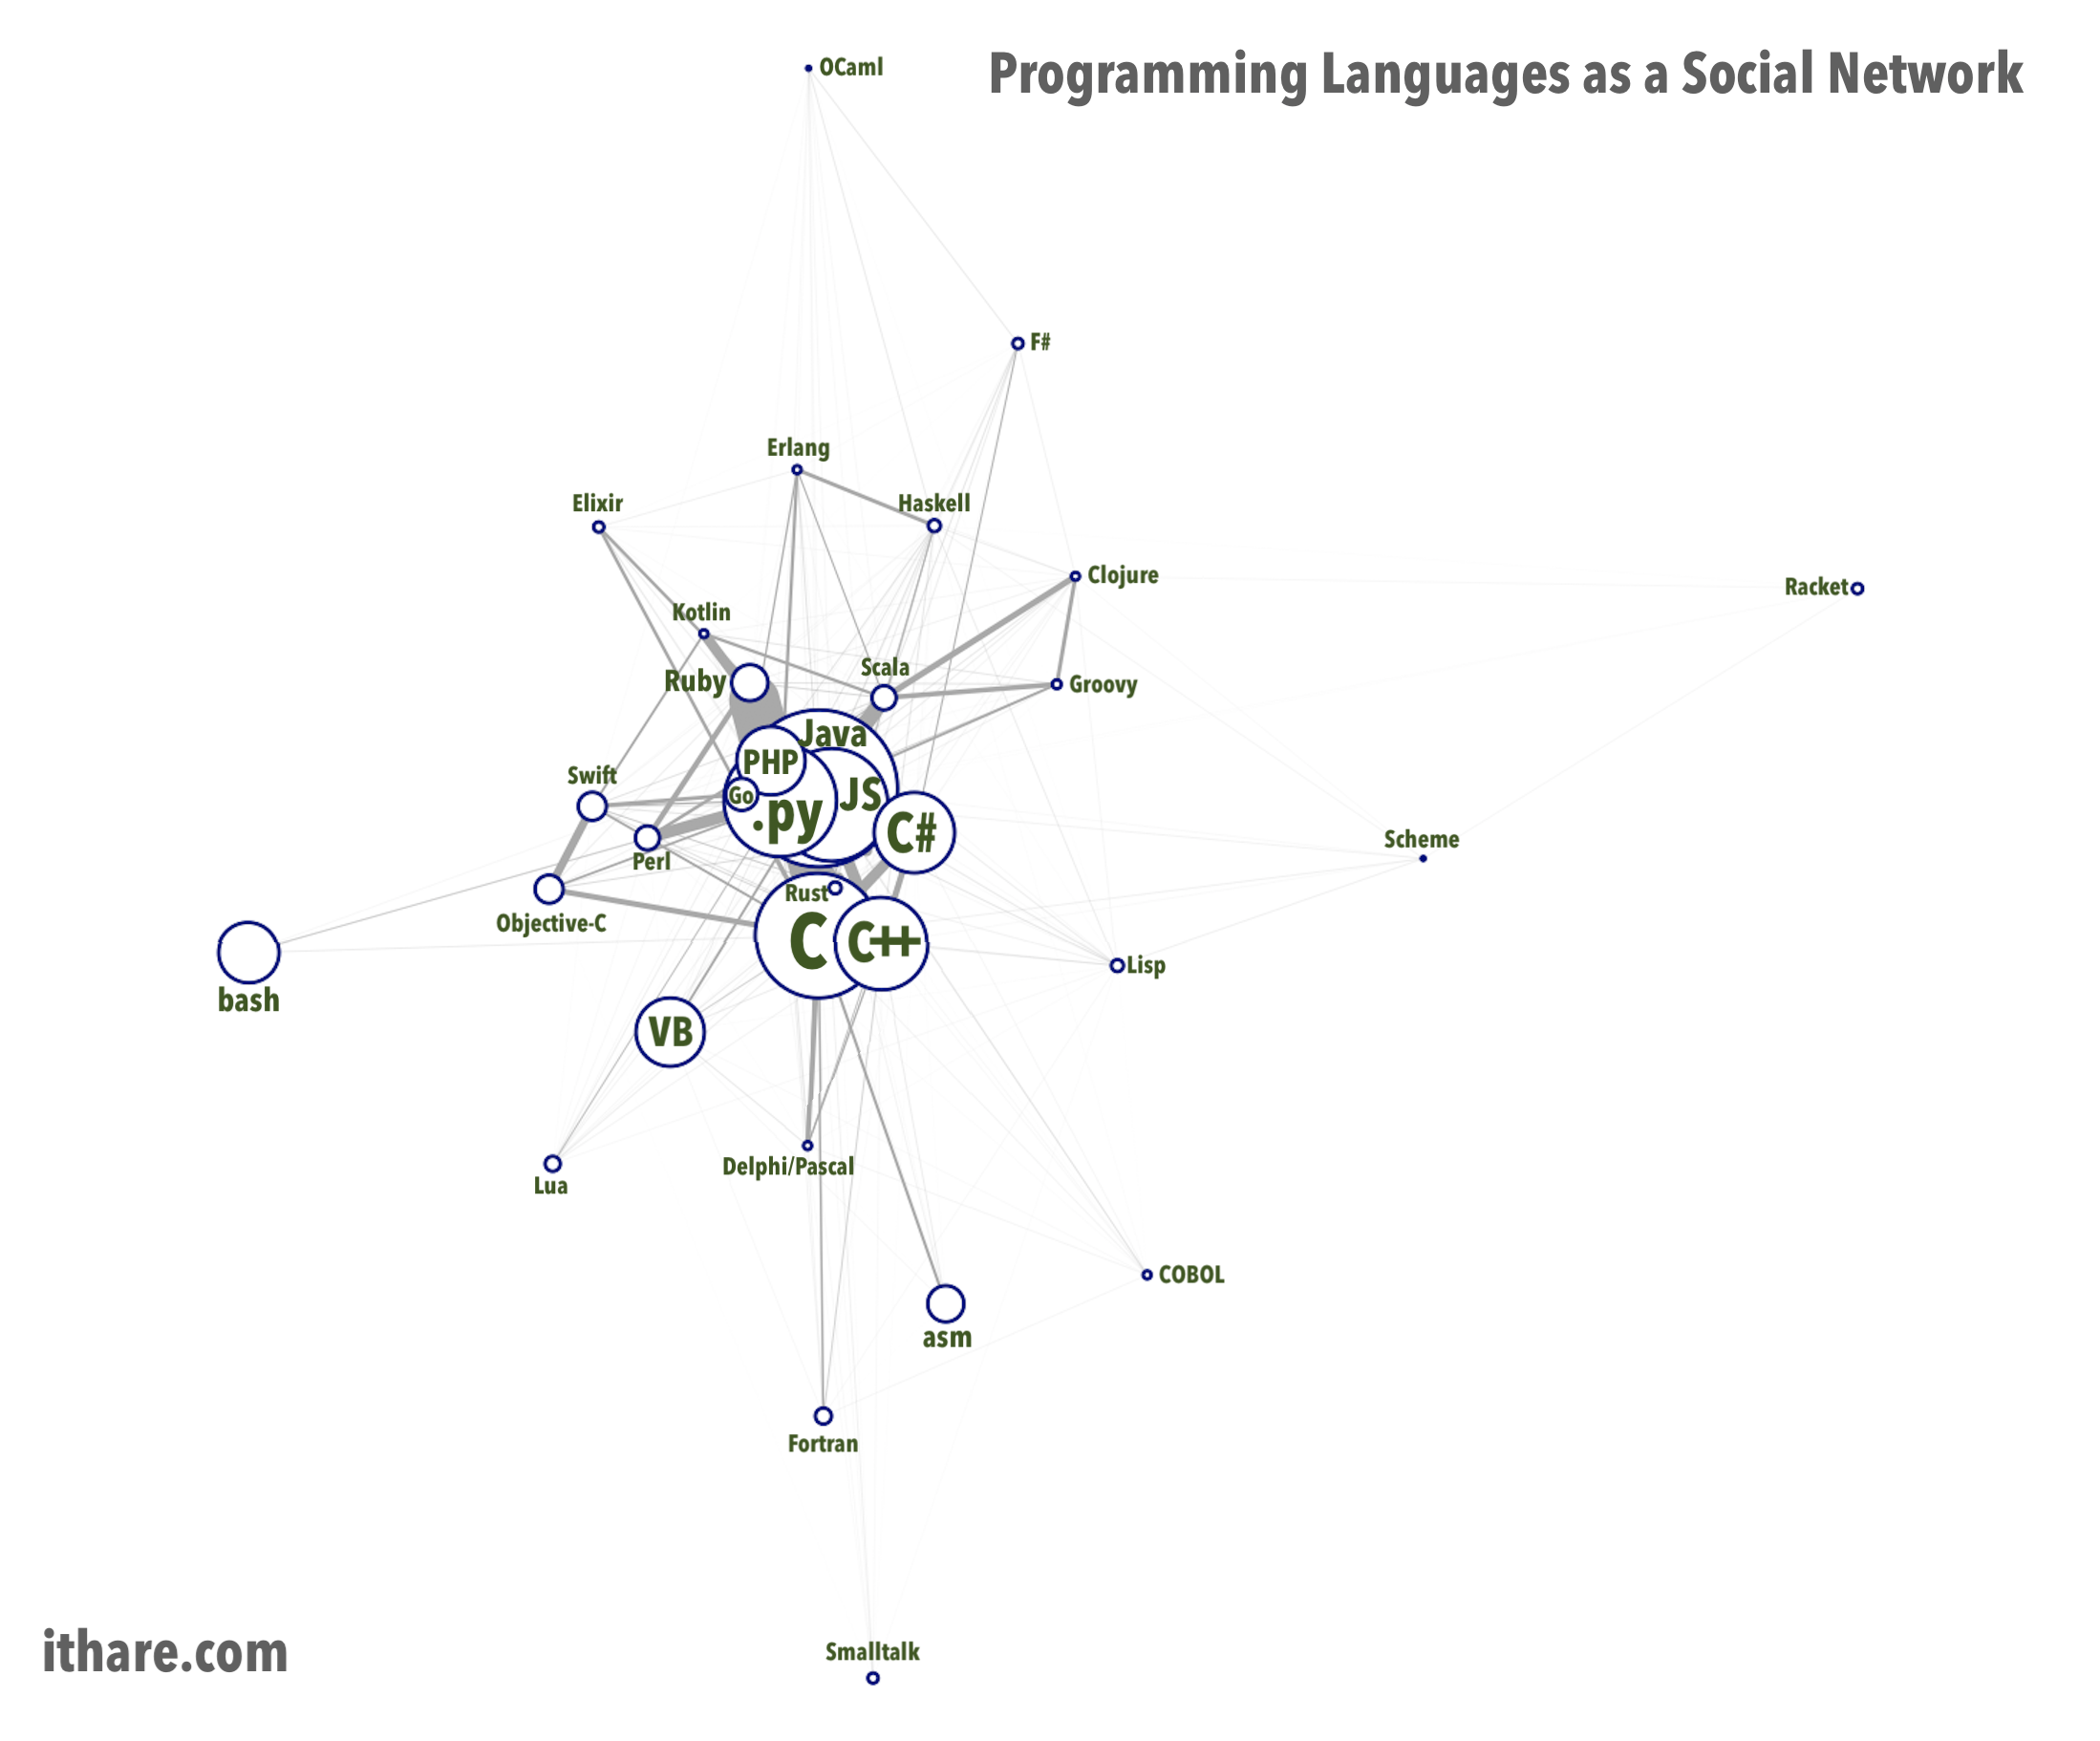 Programming Languages as a Social Network